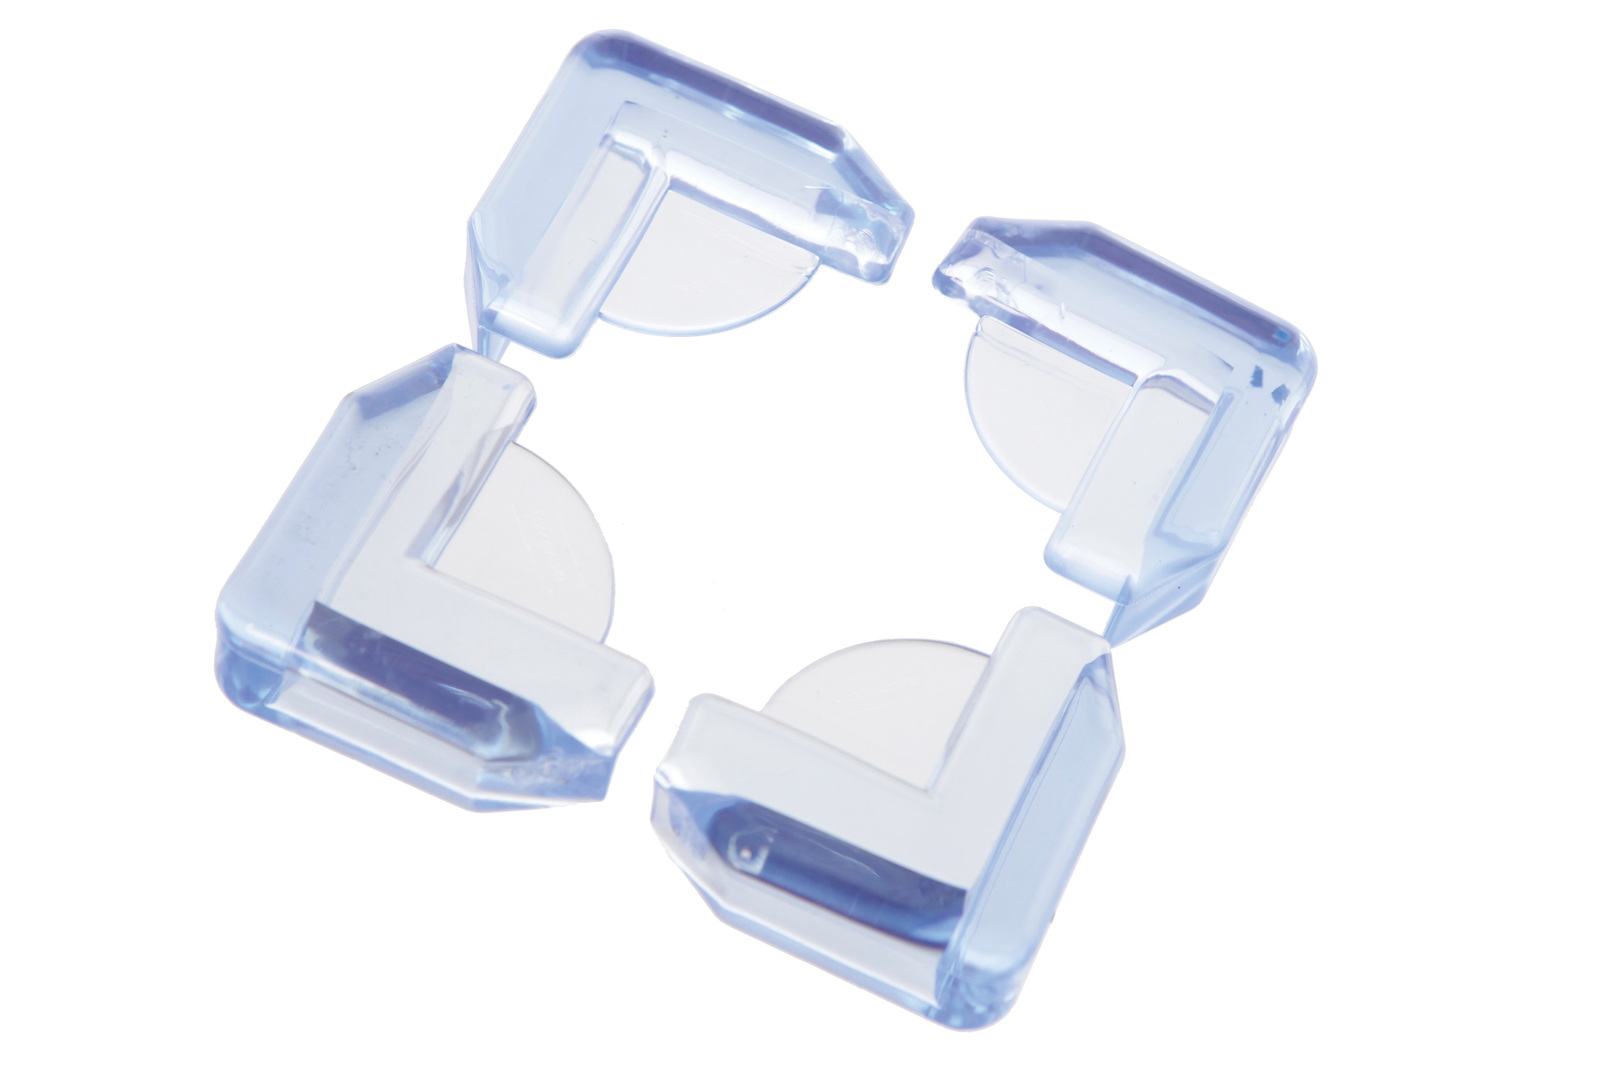 Dreambaby Glass Table & Corner Cushions (4 Pack) image